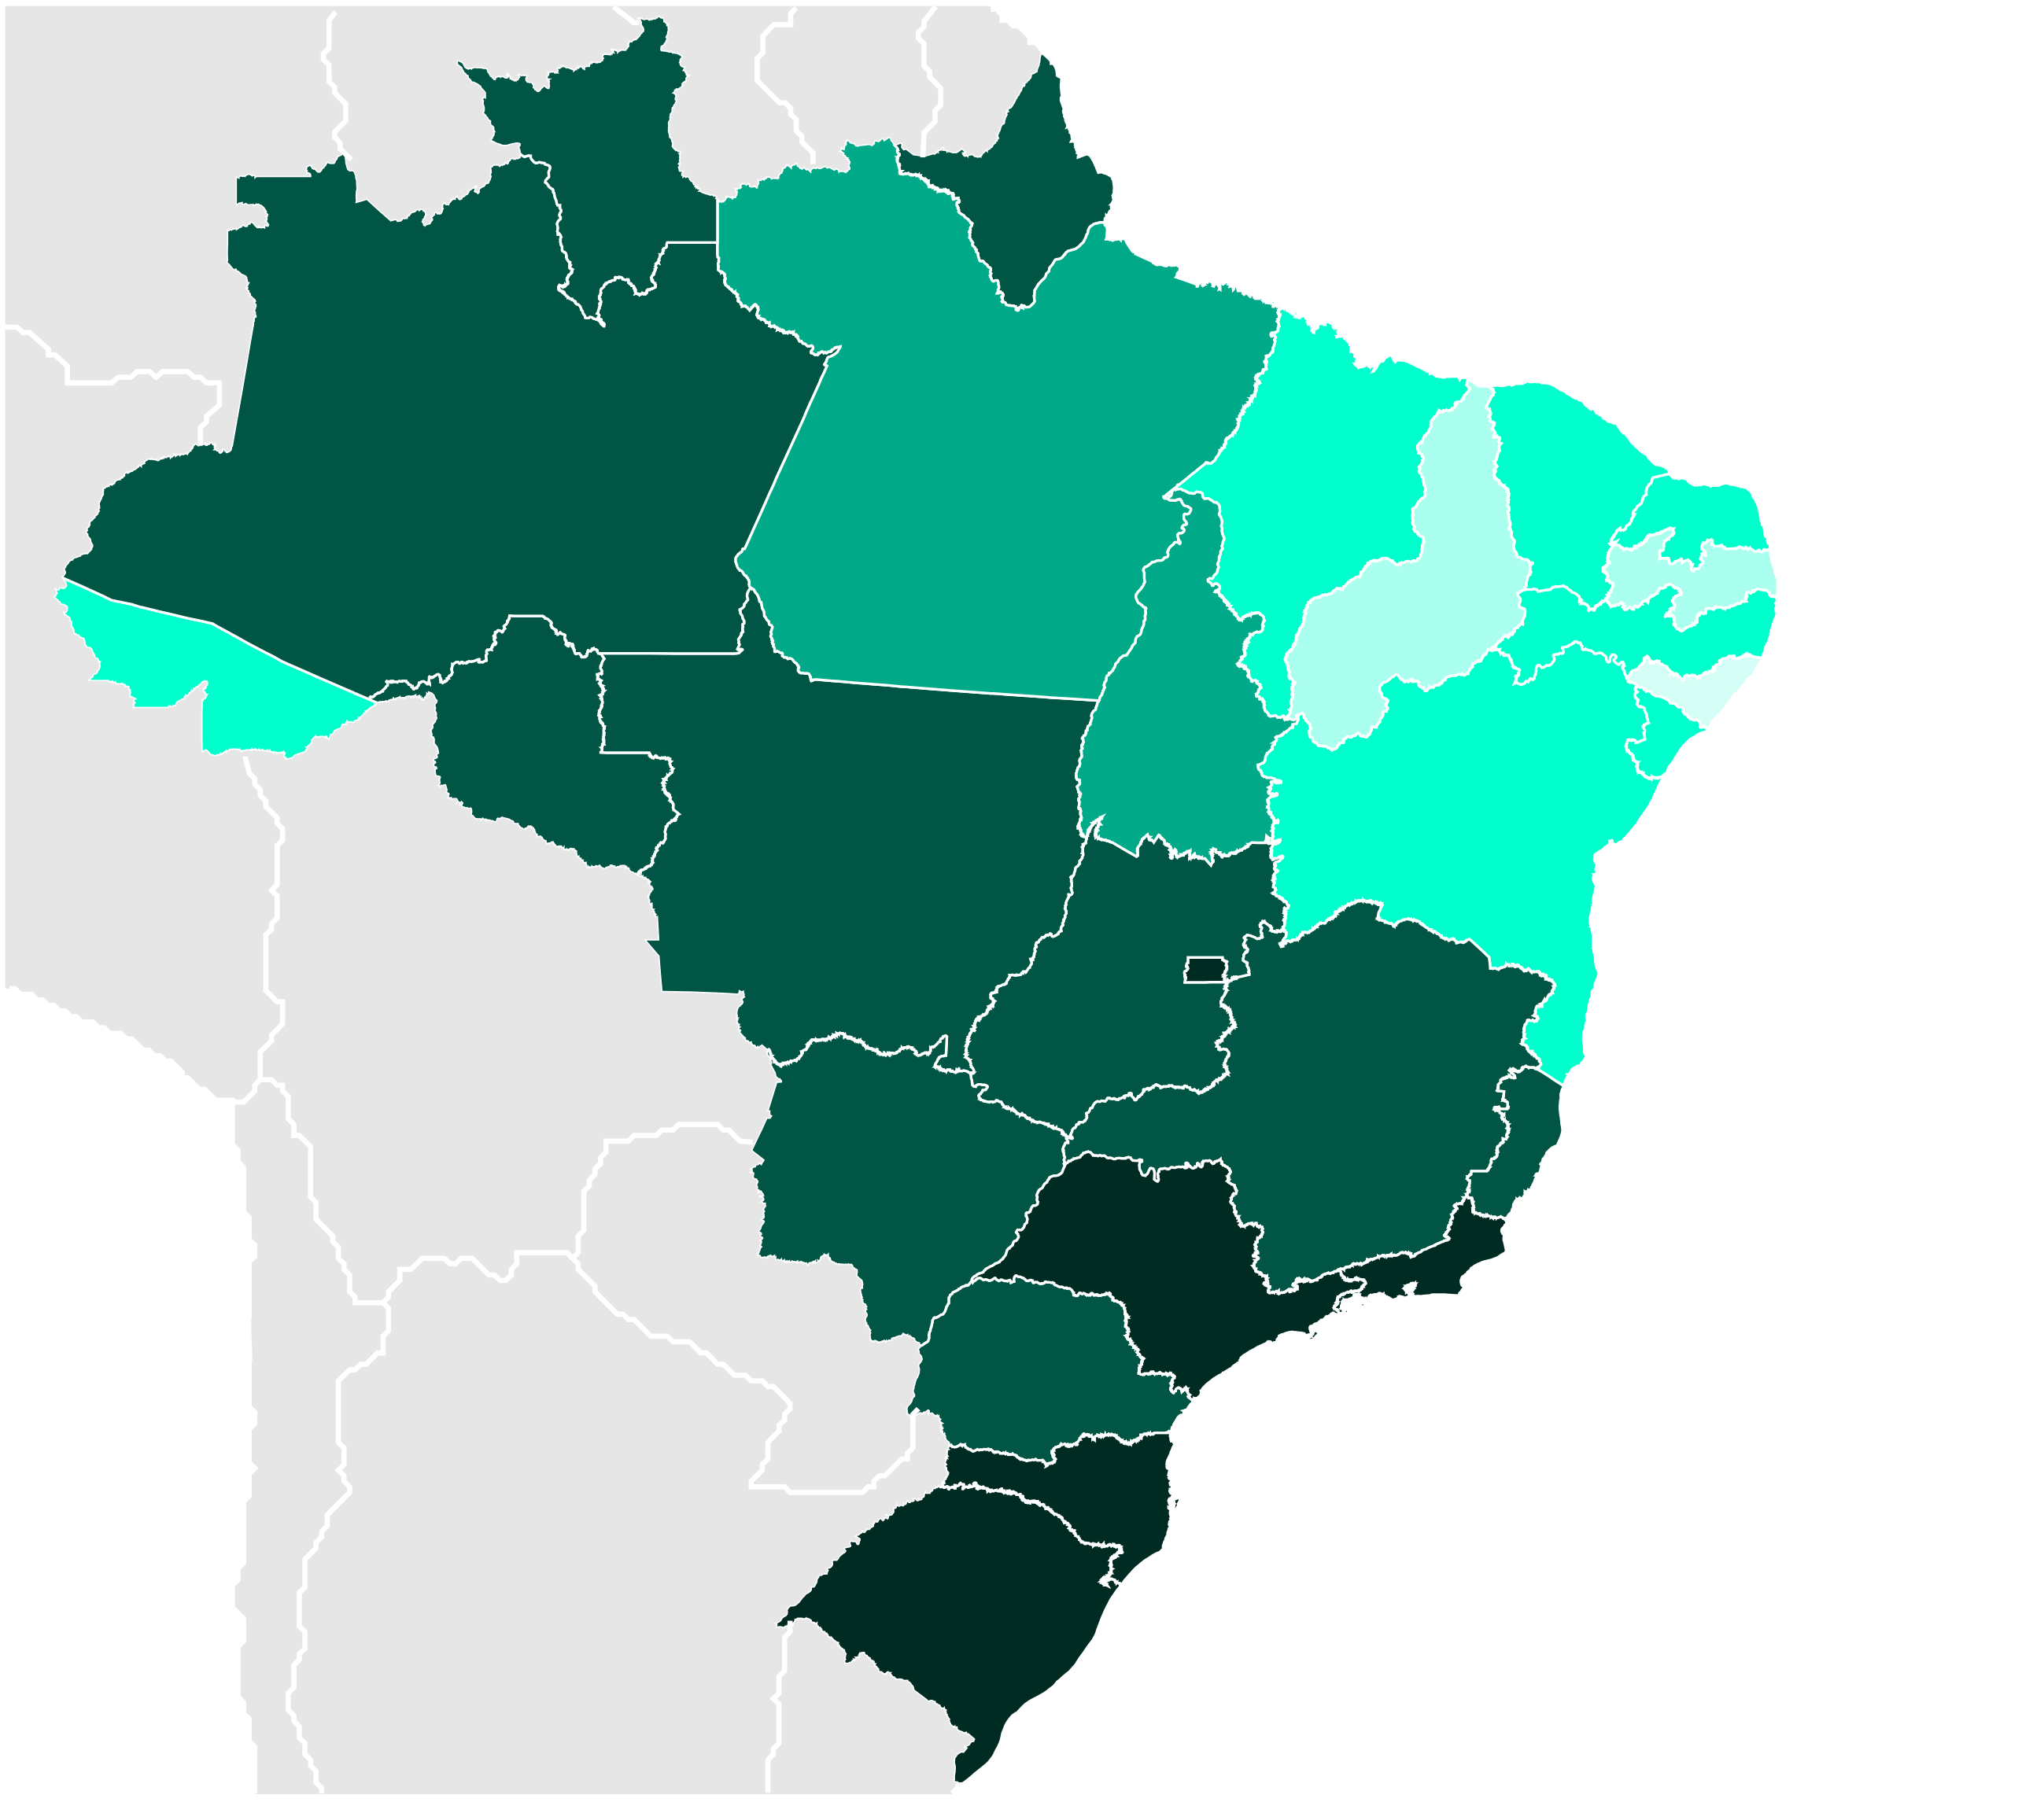 File:Brazilian States by Literacy rate.PNG - Wikipedia, the free ...